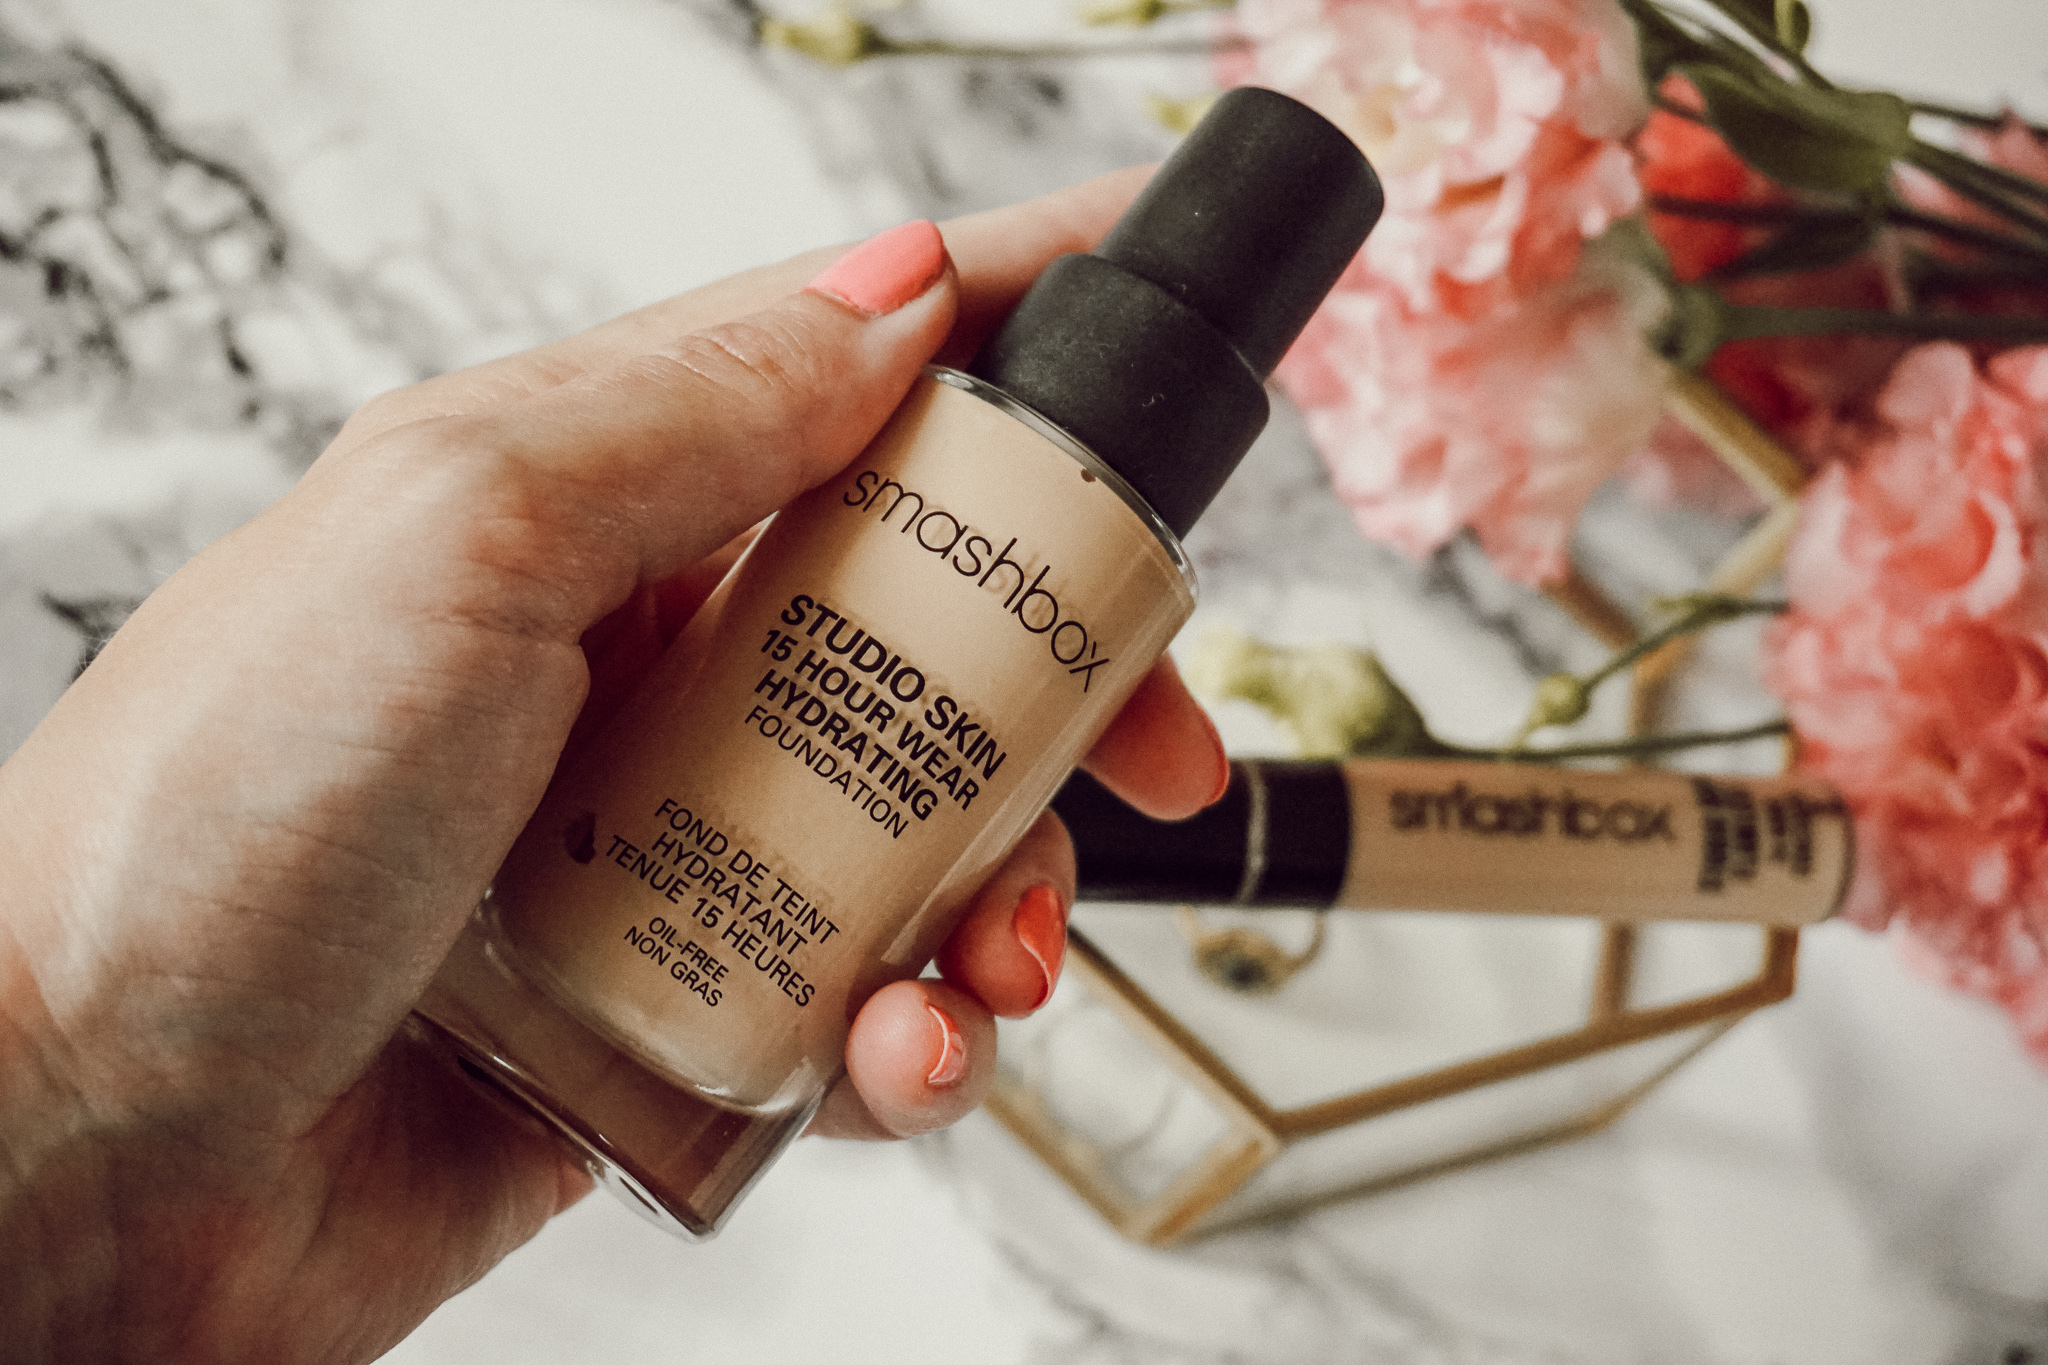 Smashbox Foundation Concealer